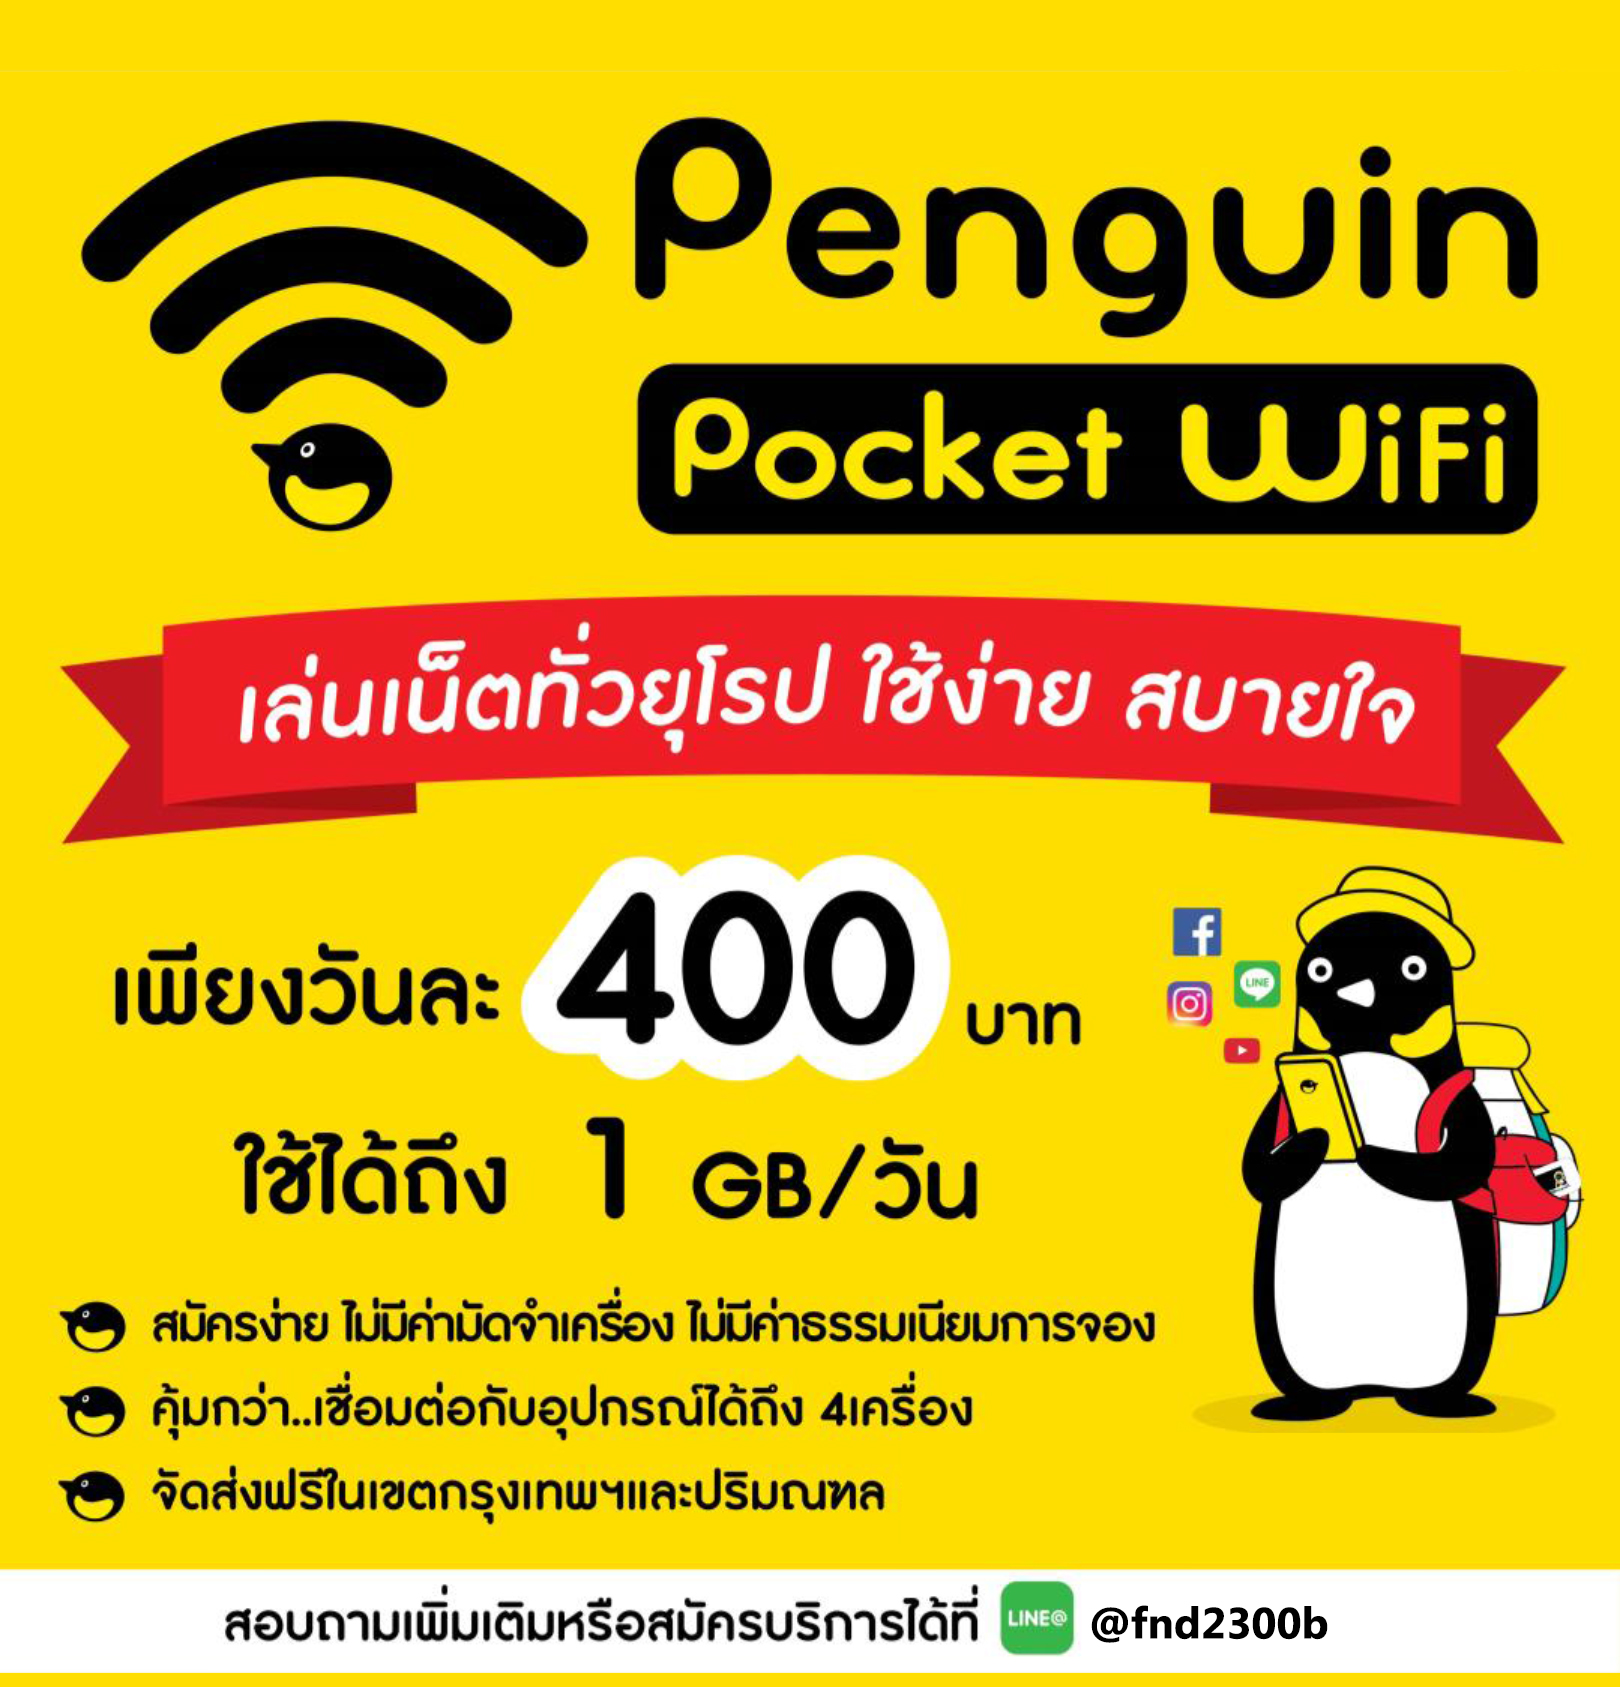 Penguin Pocket Wifi